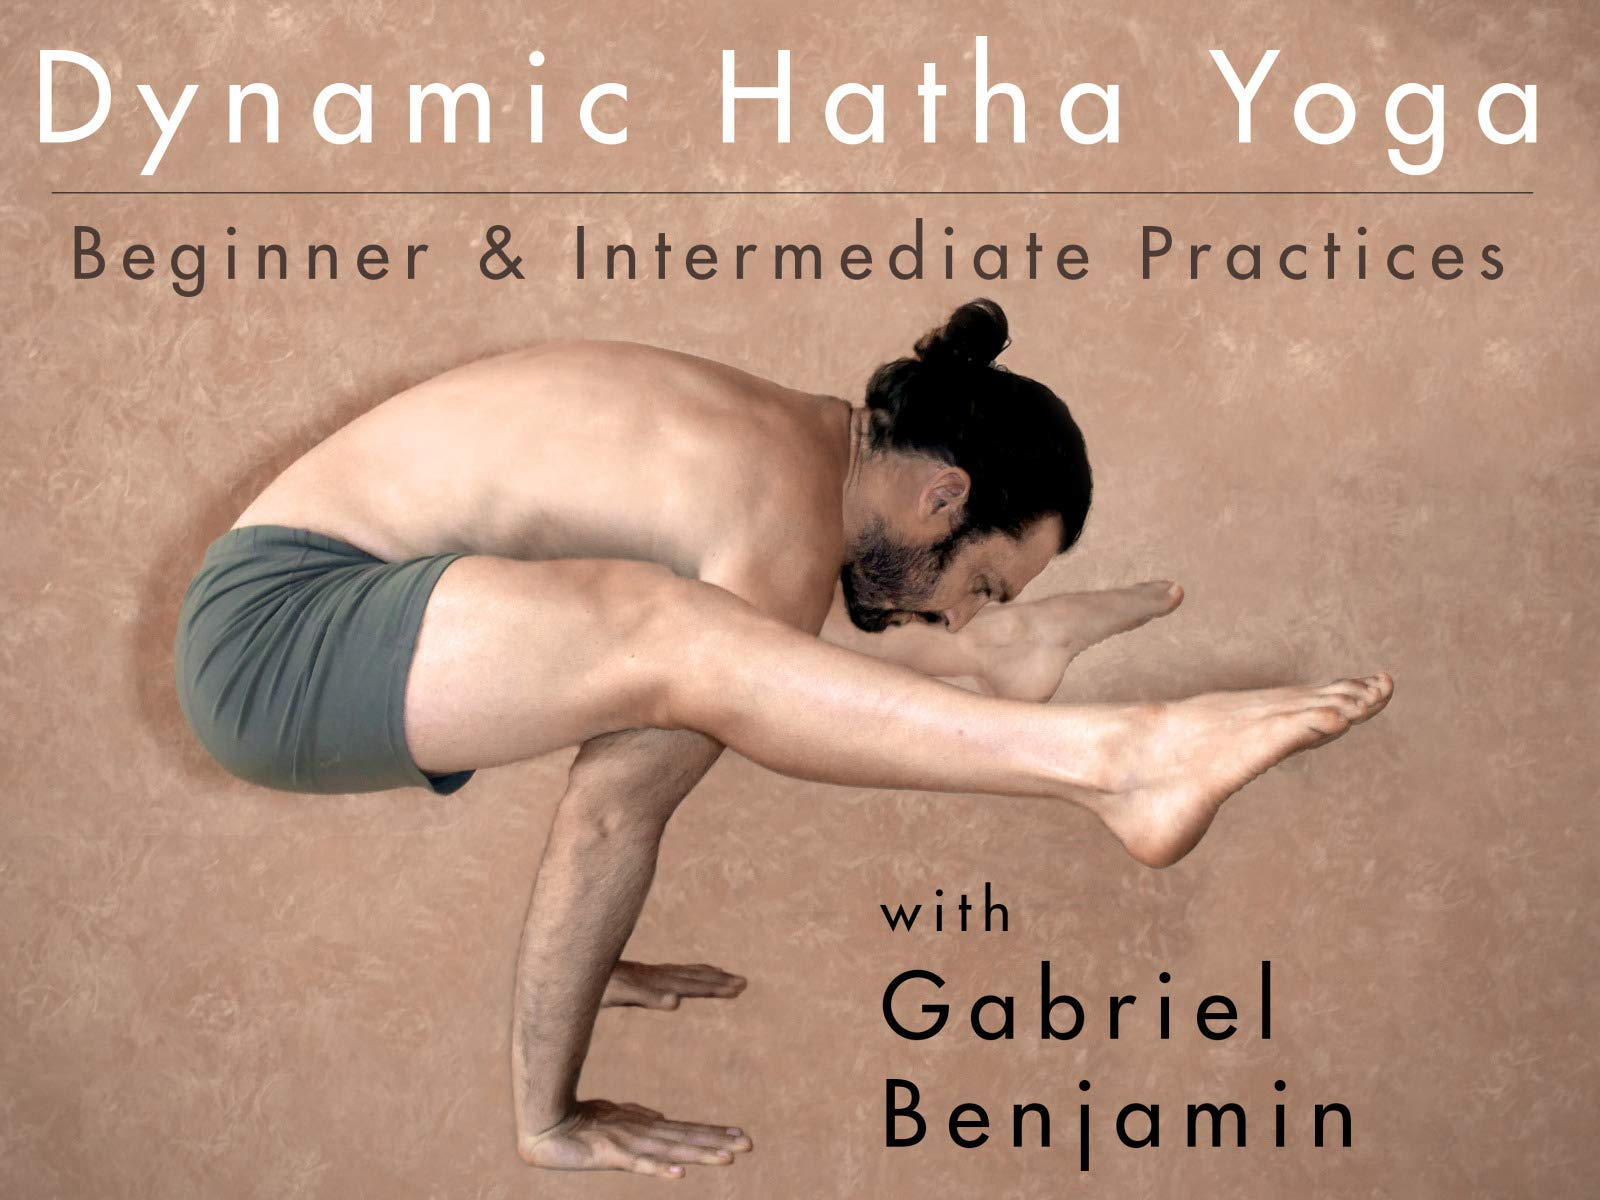 Amazon.com: Watch Dynamic Hatha Yoga | Prime Video